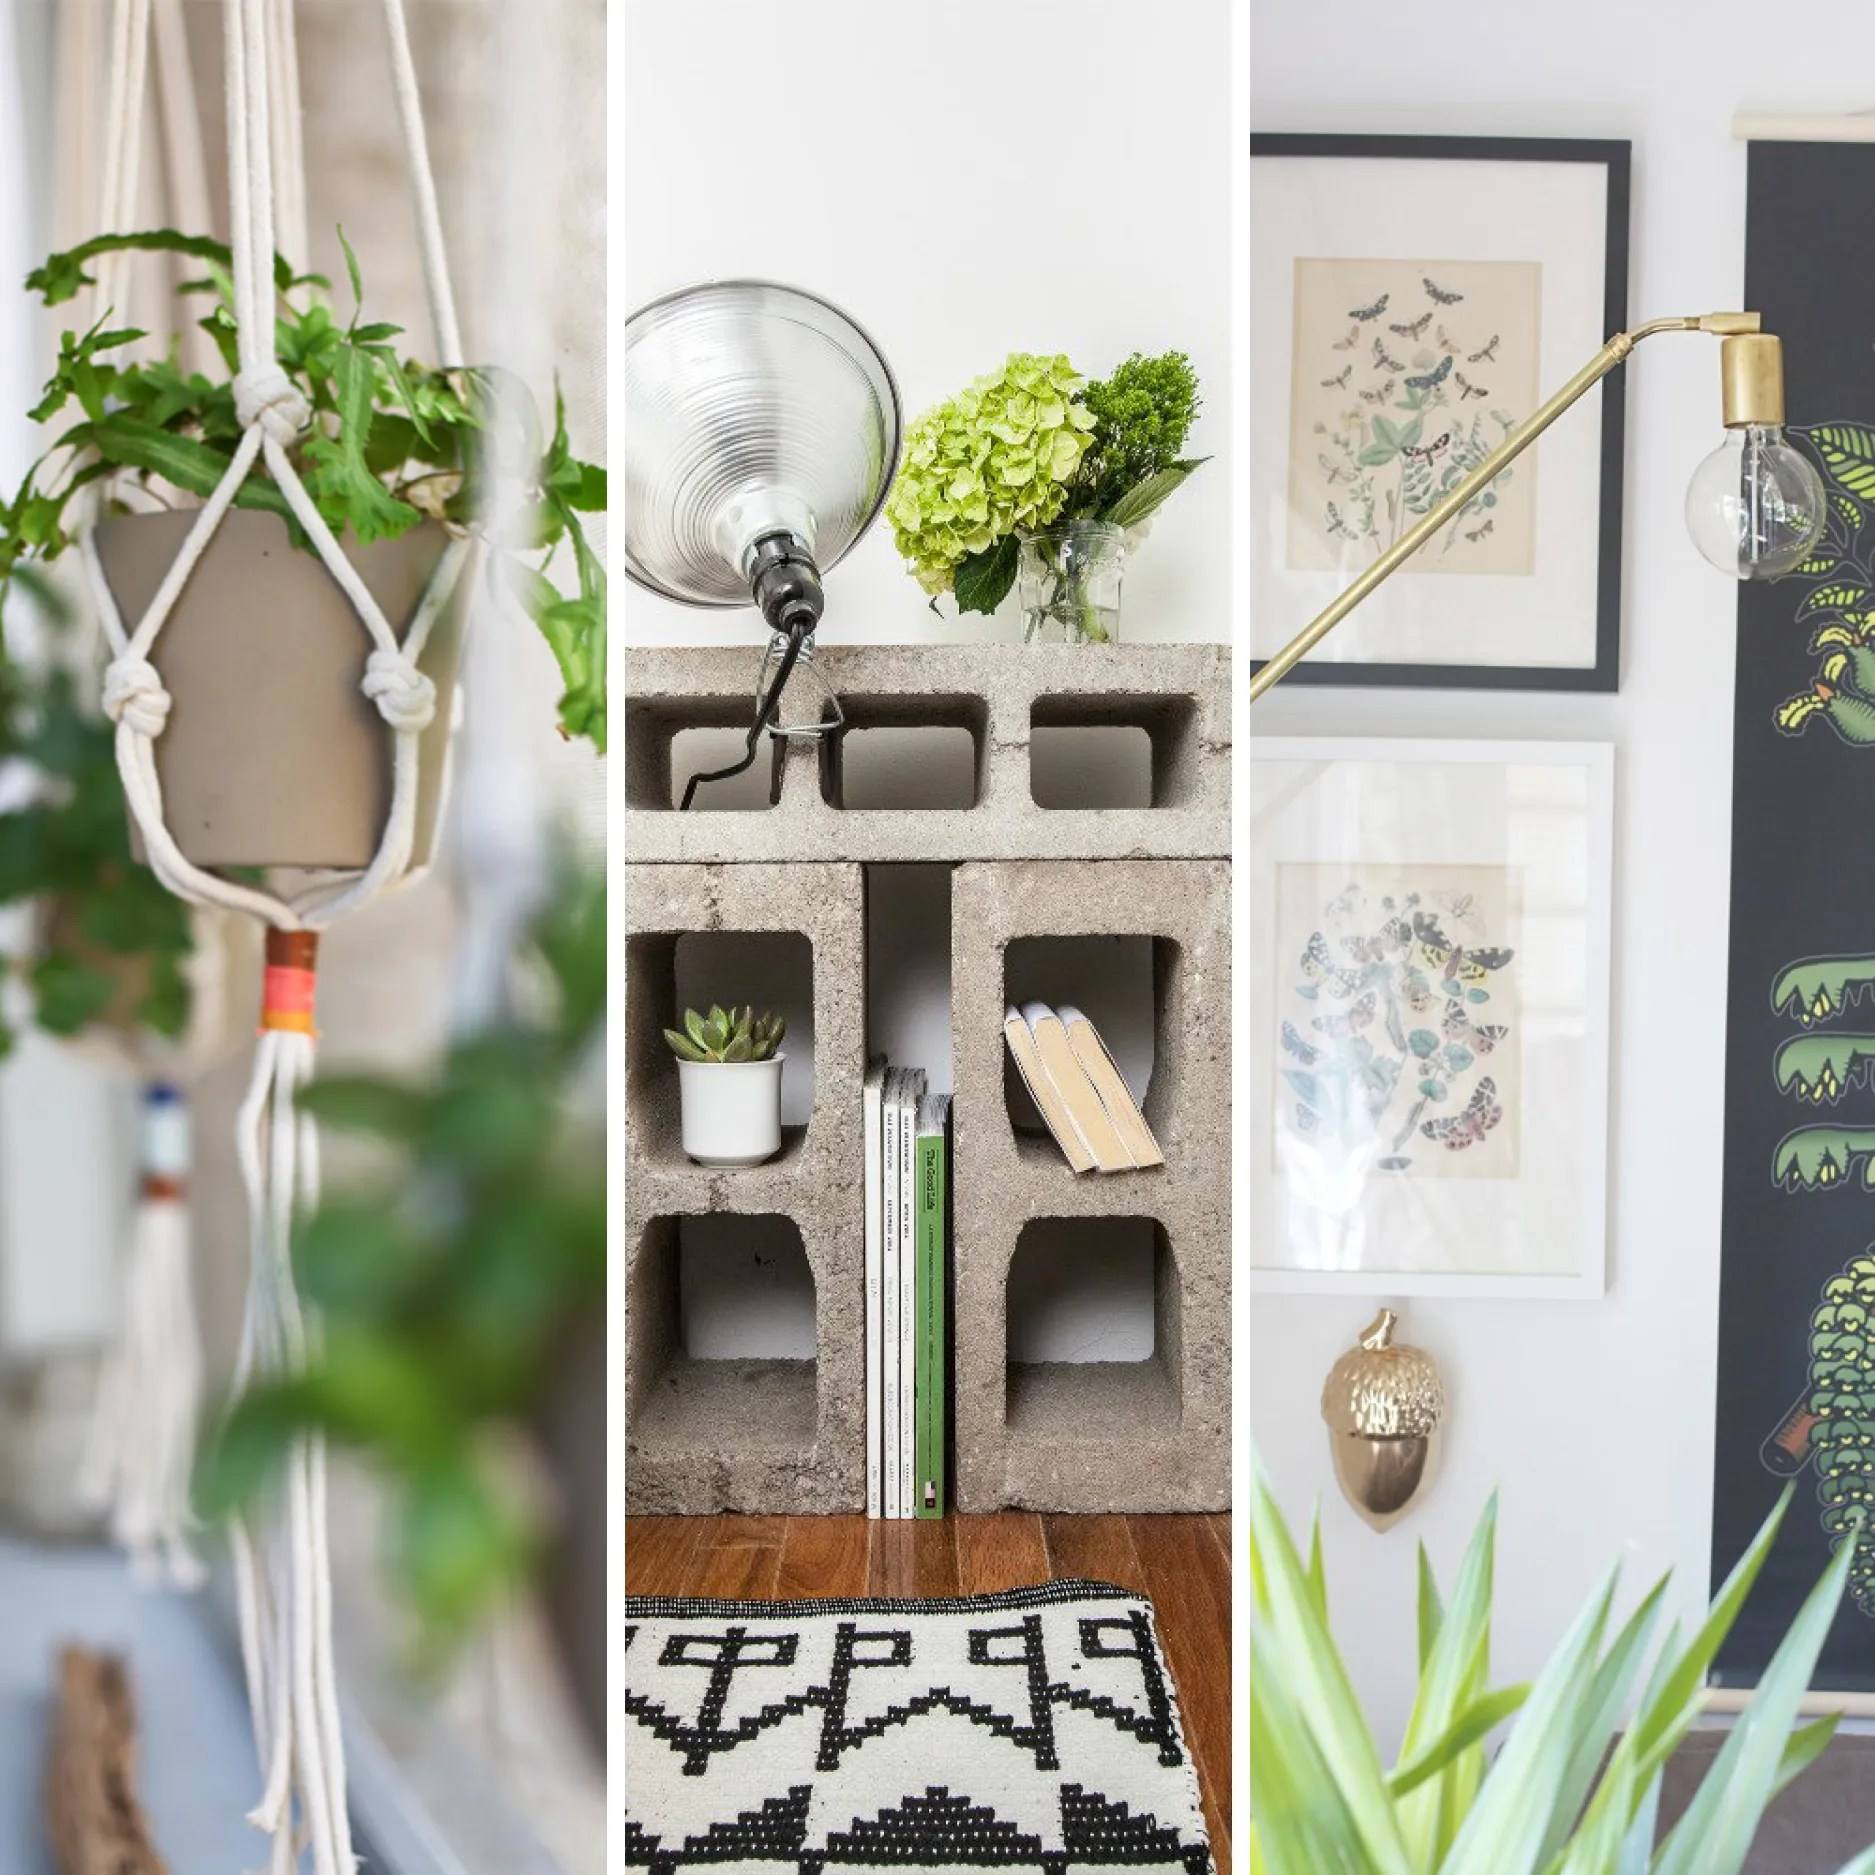 Cool Plants For Your Room Ways To Decorate Your Home For Cheap